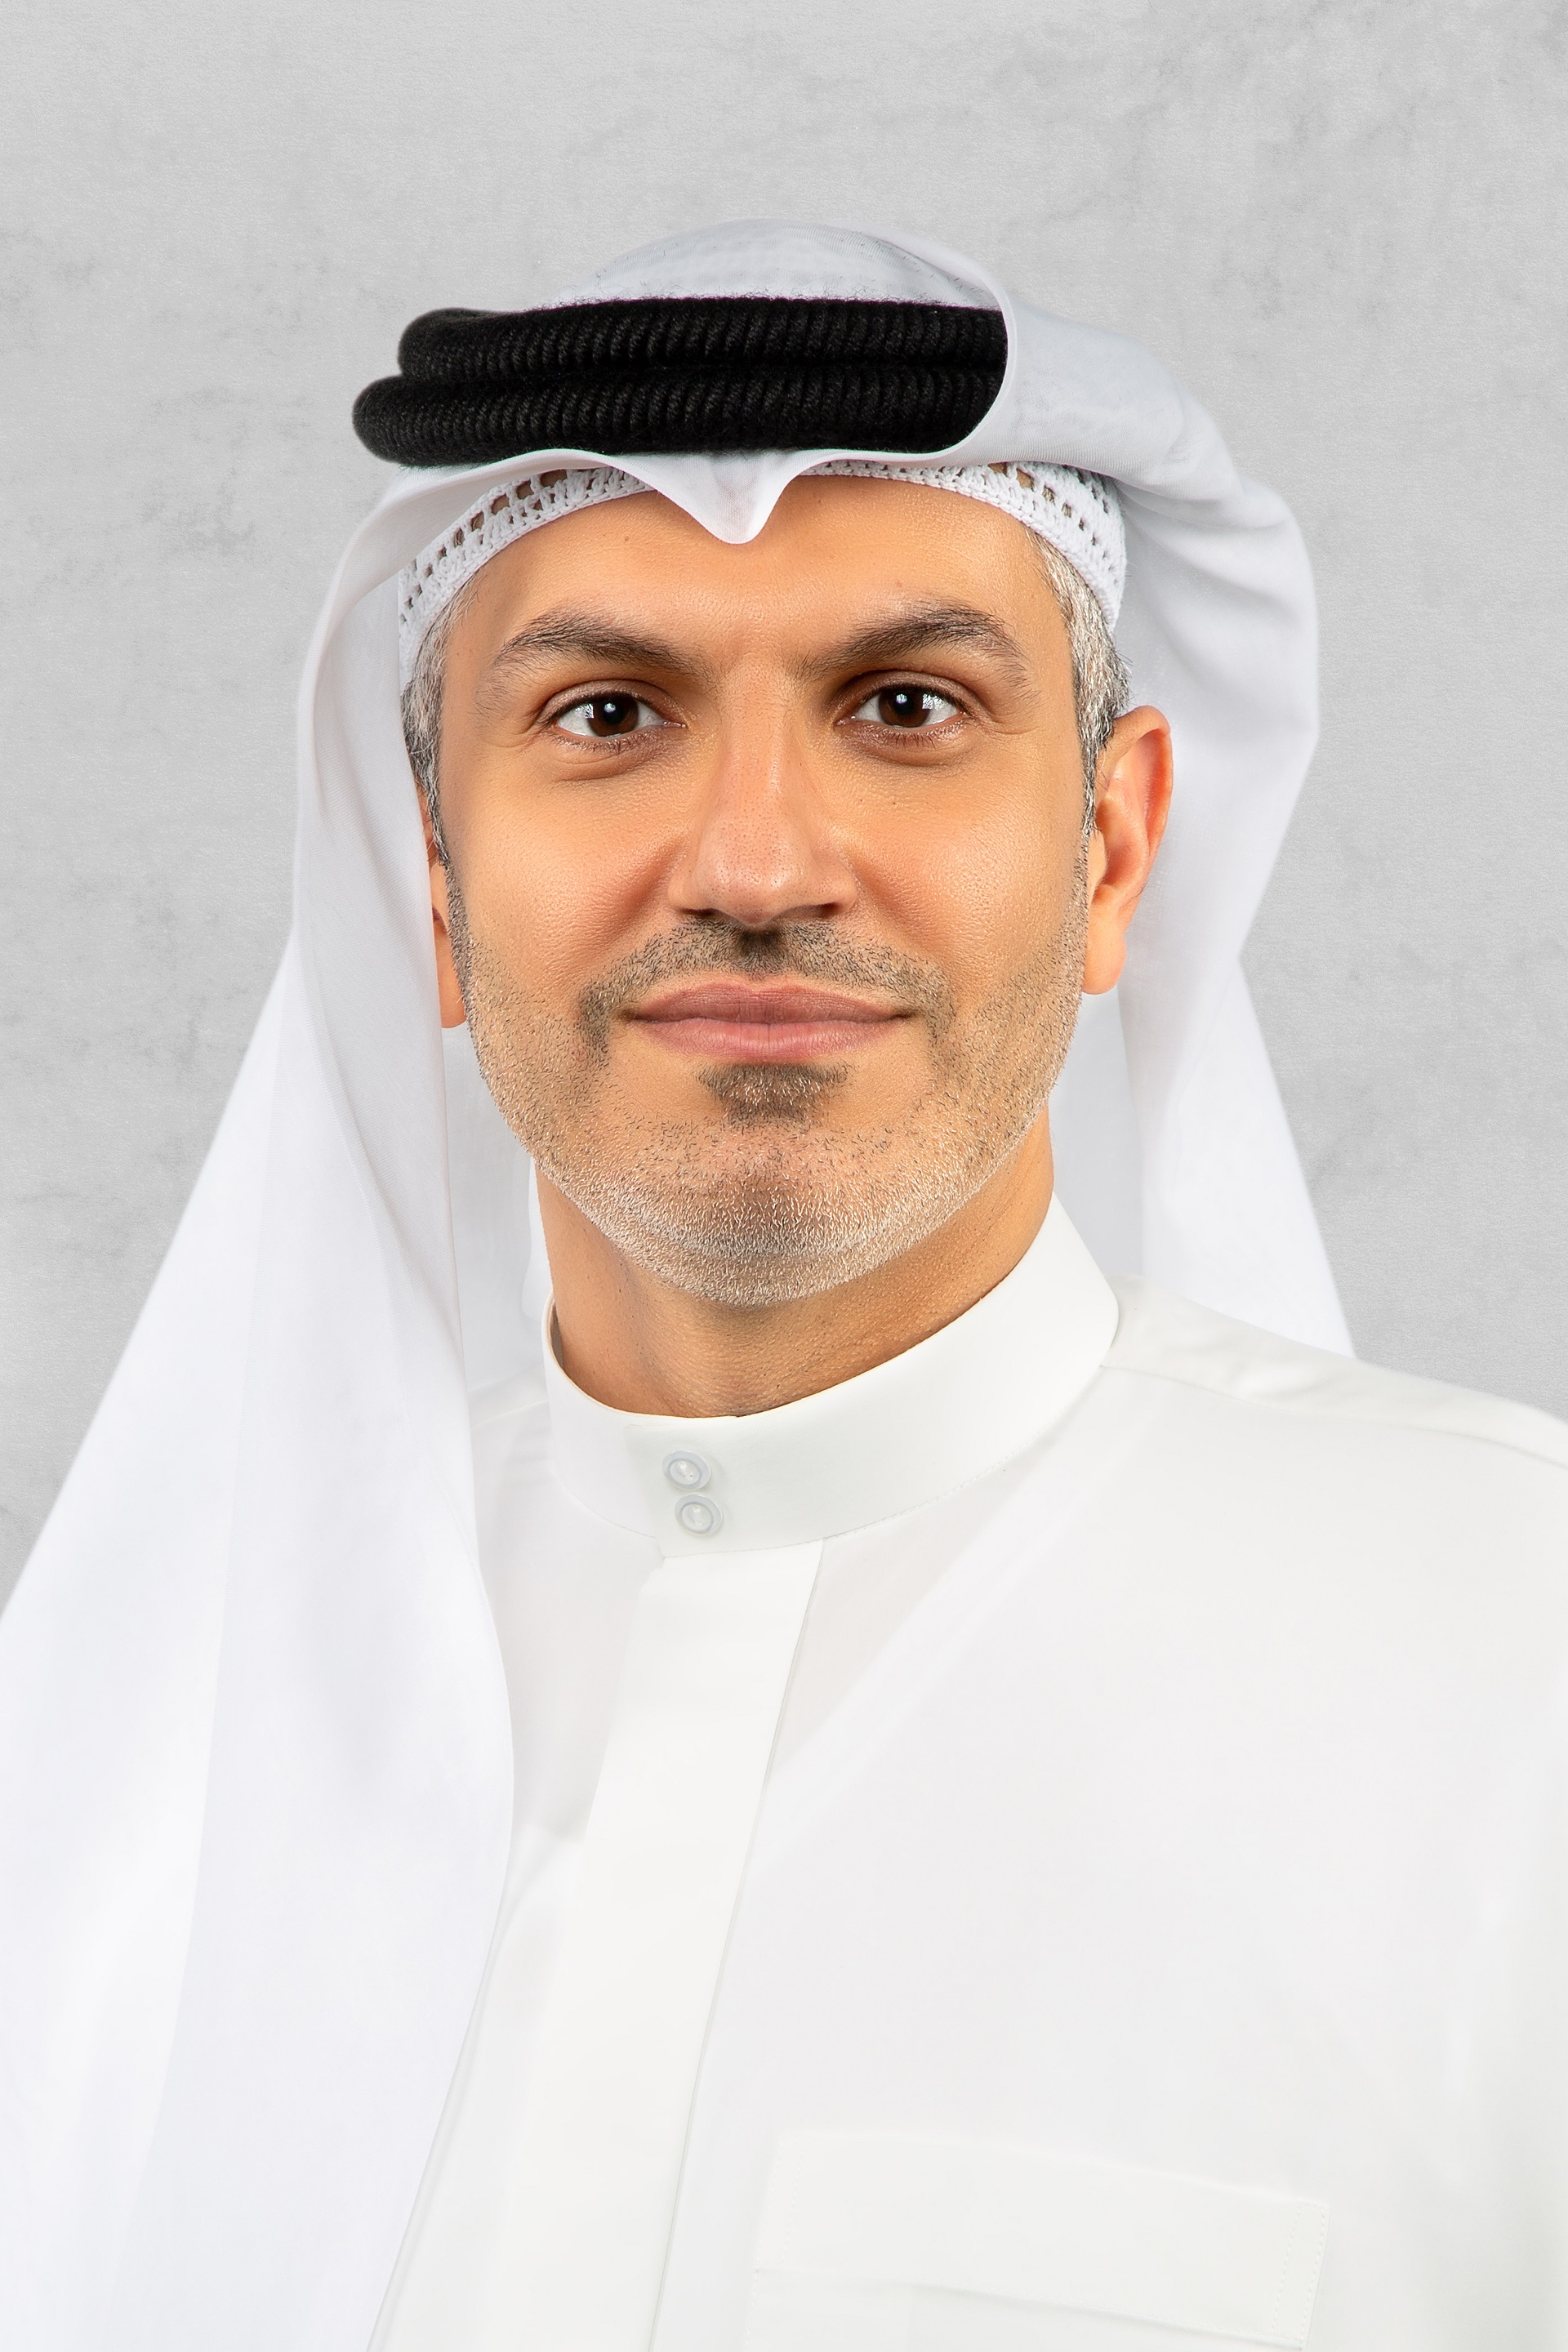 Mohsen Ahmad, CEO of Logistics District at Dubai South